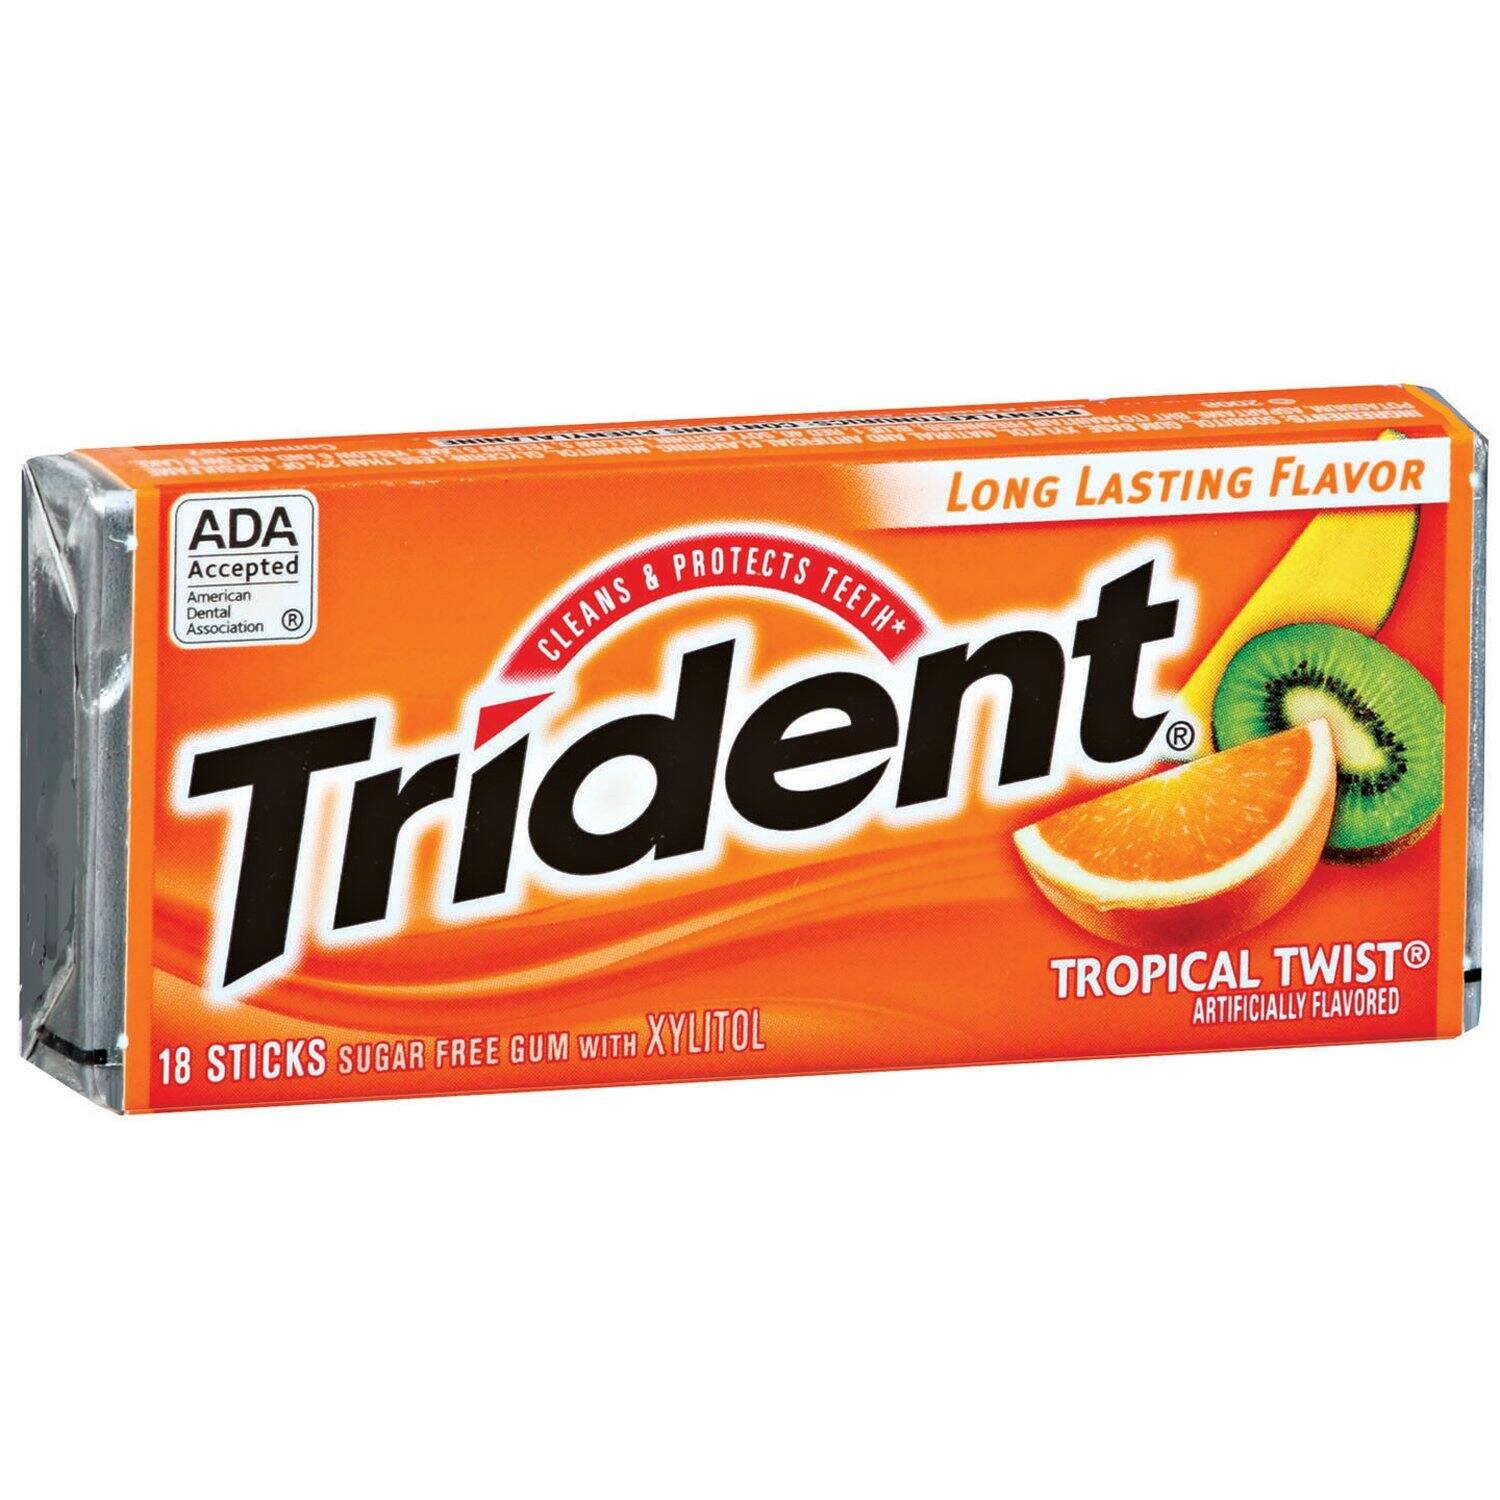 OOS---Trident Gum, Tropical Twist, 18-count (Pack of 12) $3.84 or less w/subscribe and save @Amazon